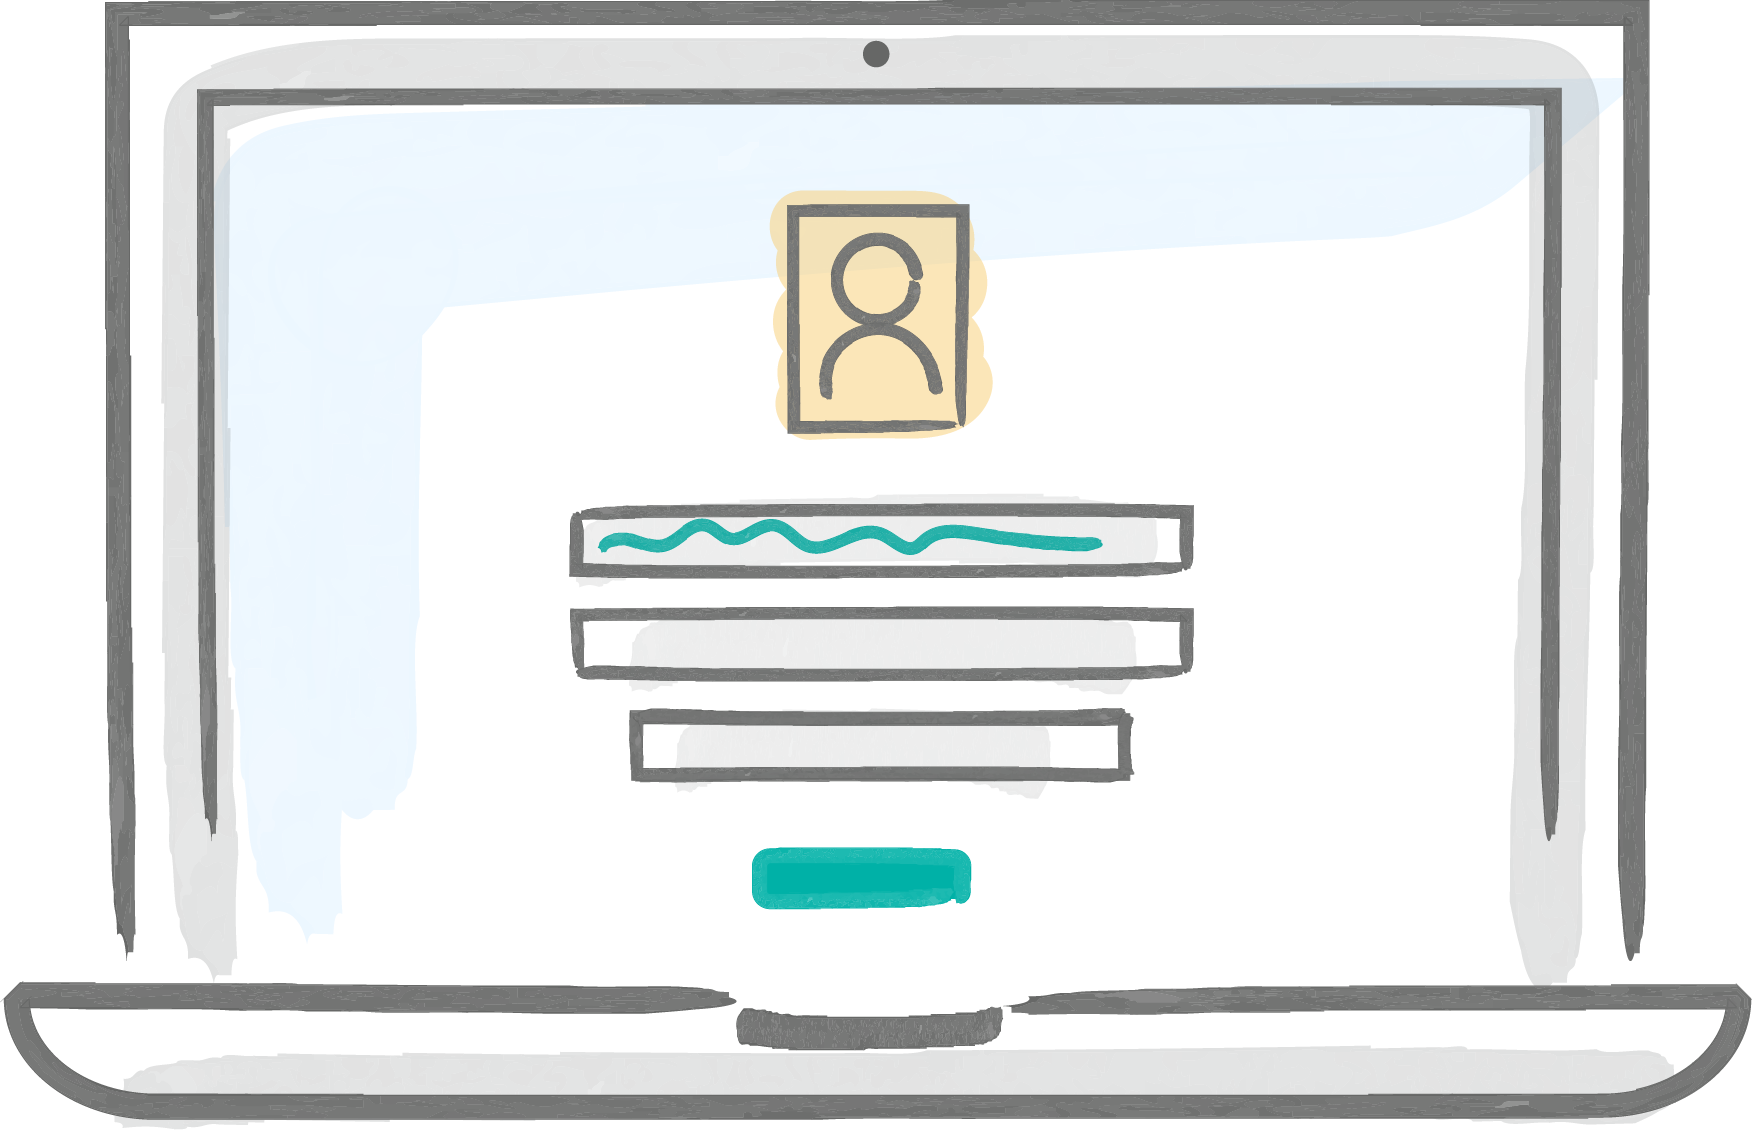 Icon of handdrawn laptop that shows login page